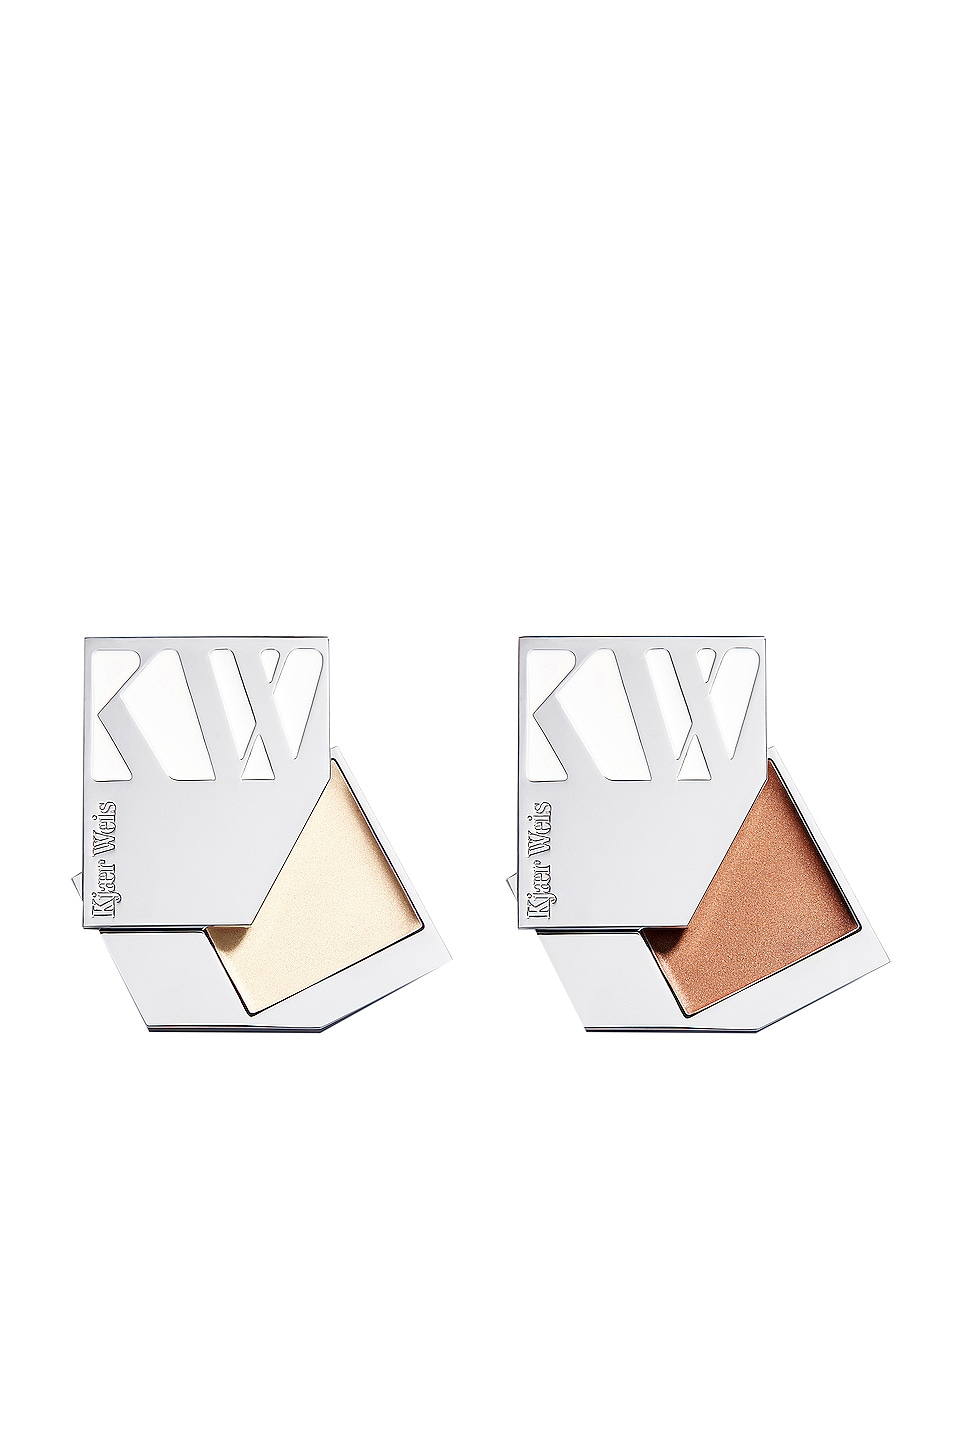 Kjaer Weis Glow Kit Warm in LA